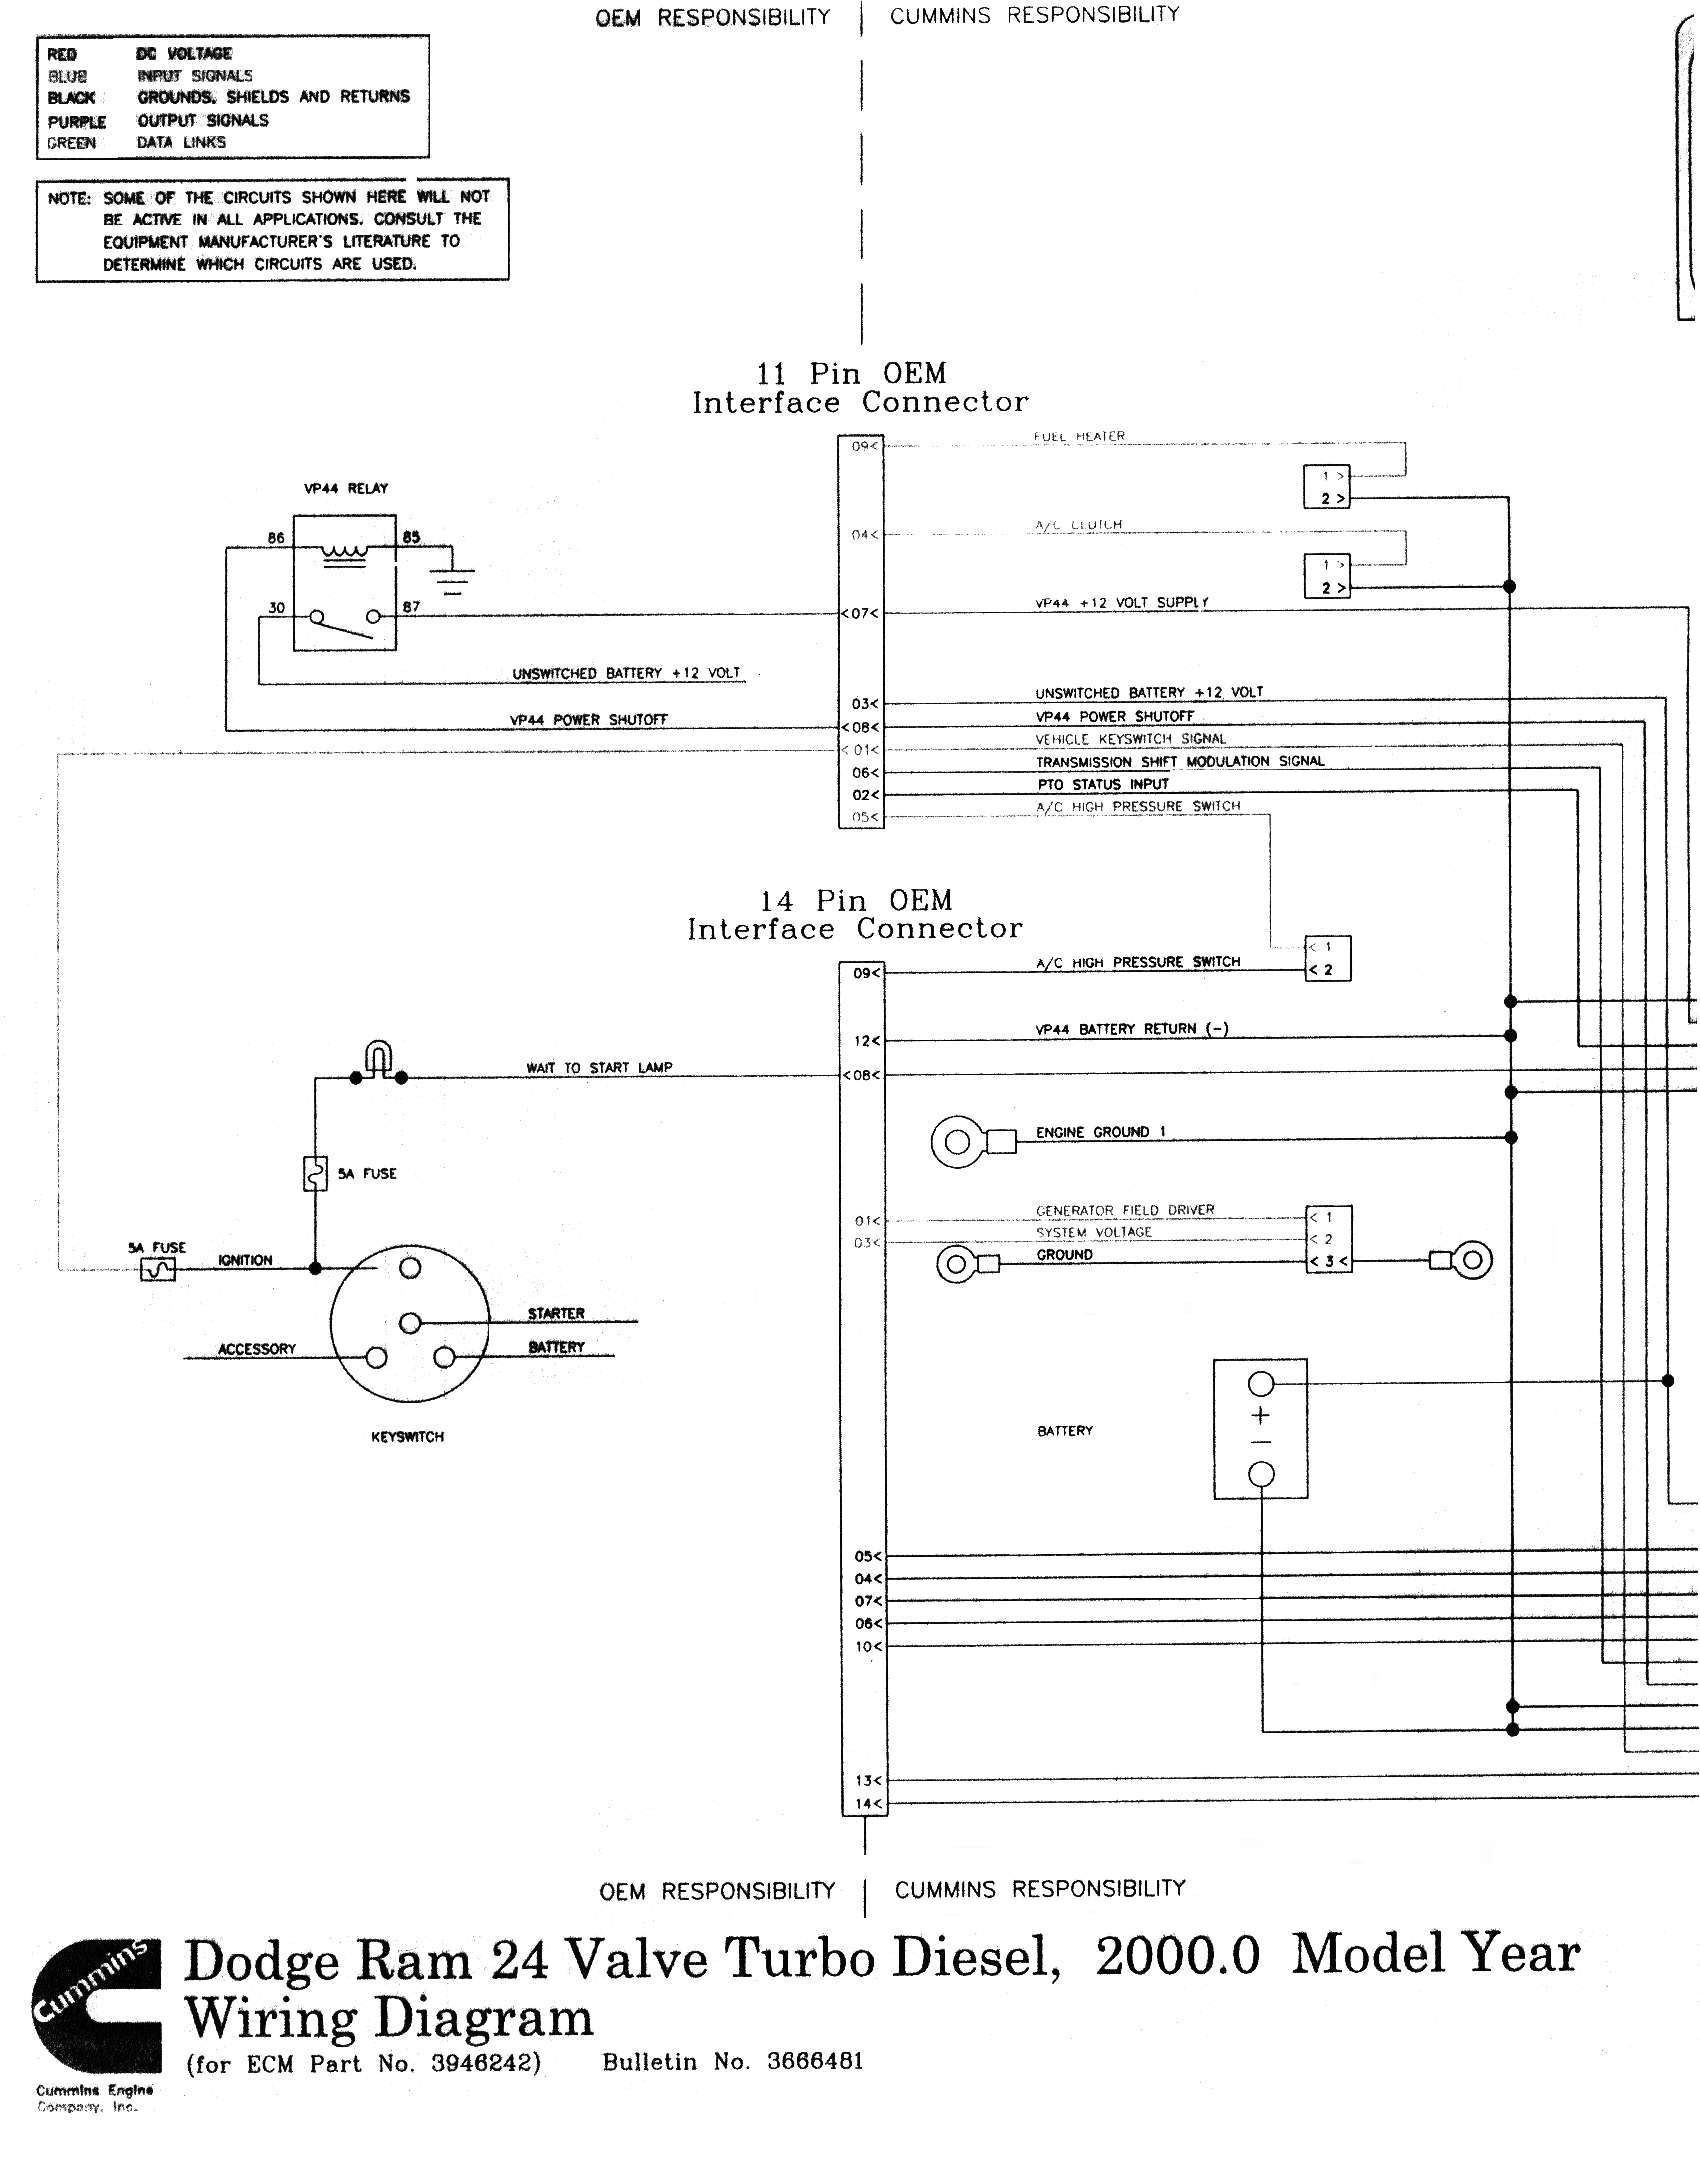 get 1999 dodge cummins ecm wiring diagram sample 1994 dodge ram wiring diagram 2006 dodge truck wiring diagram